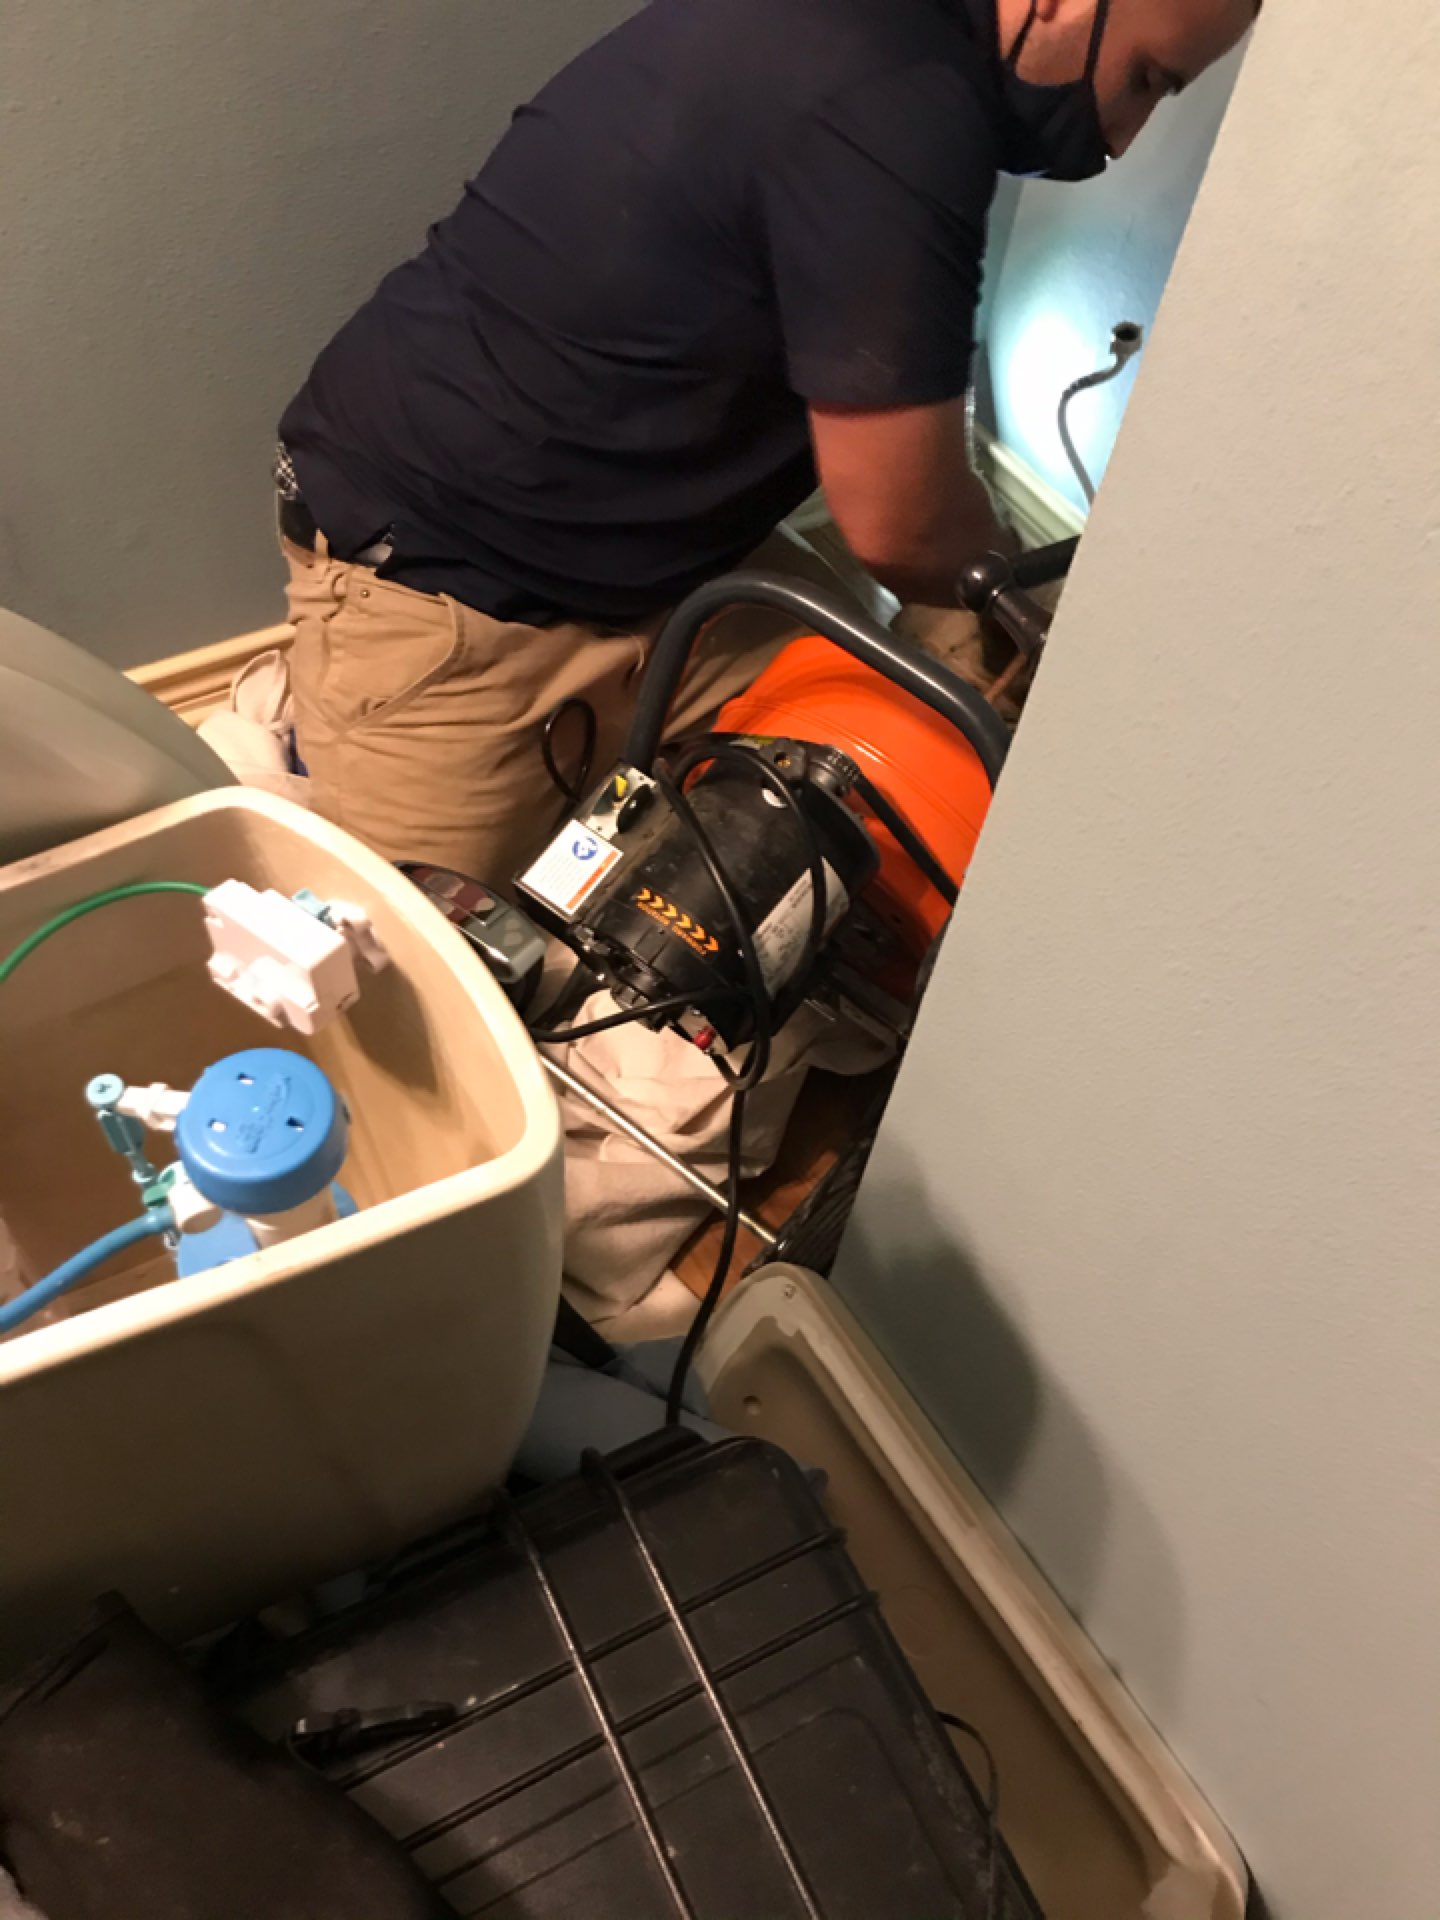 Friendswood, TX - Blockage at toilet caused damage in living room carpet. Pulled and ran cable  reset toilet in hall bath